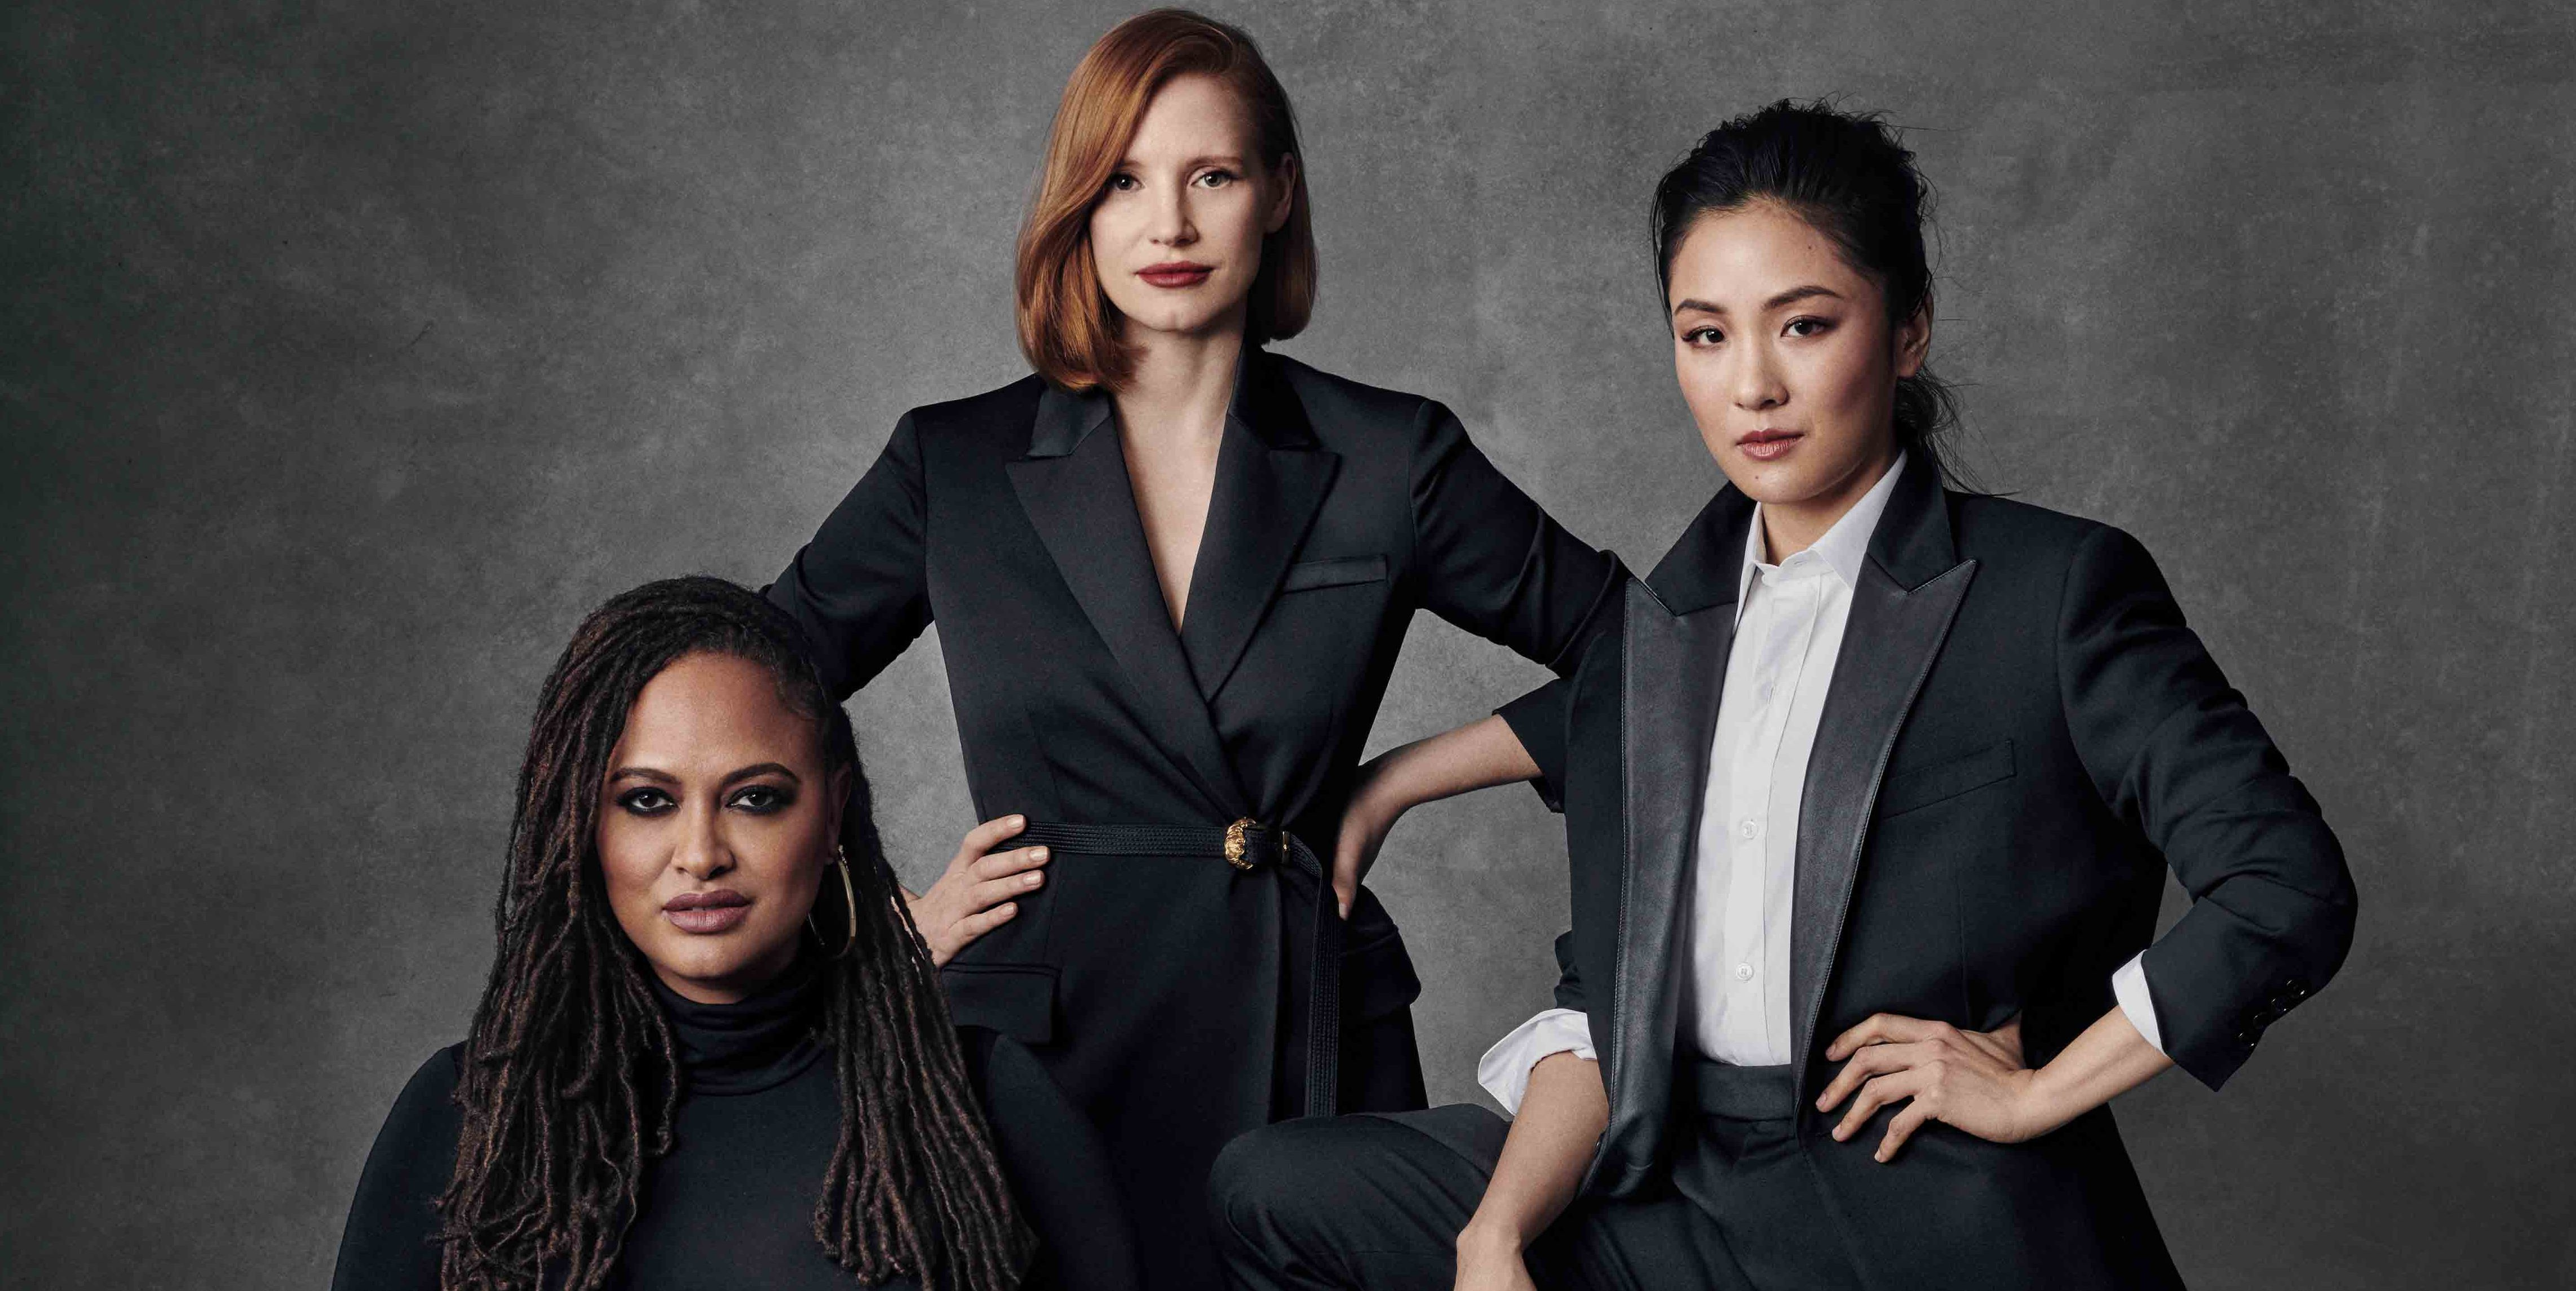 On-screen and off, these women are shaping the future of Hollywood.